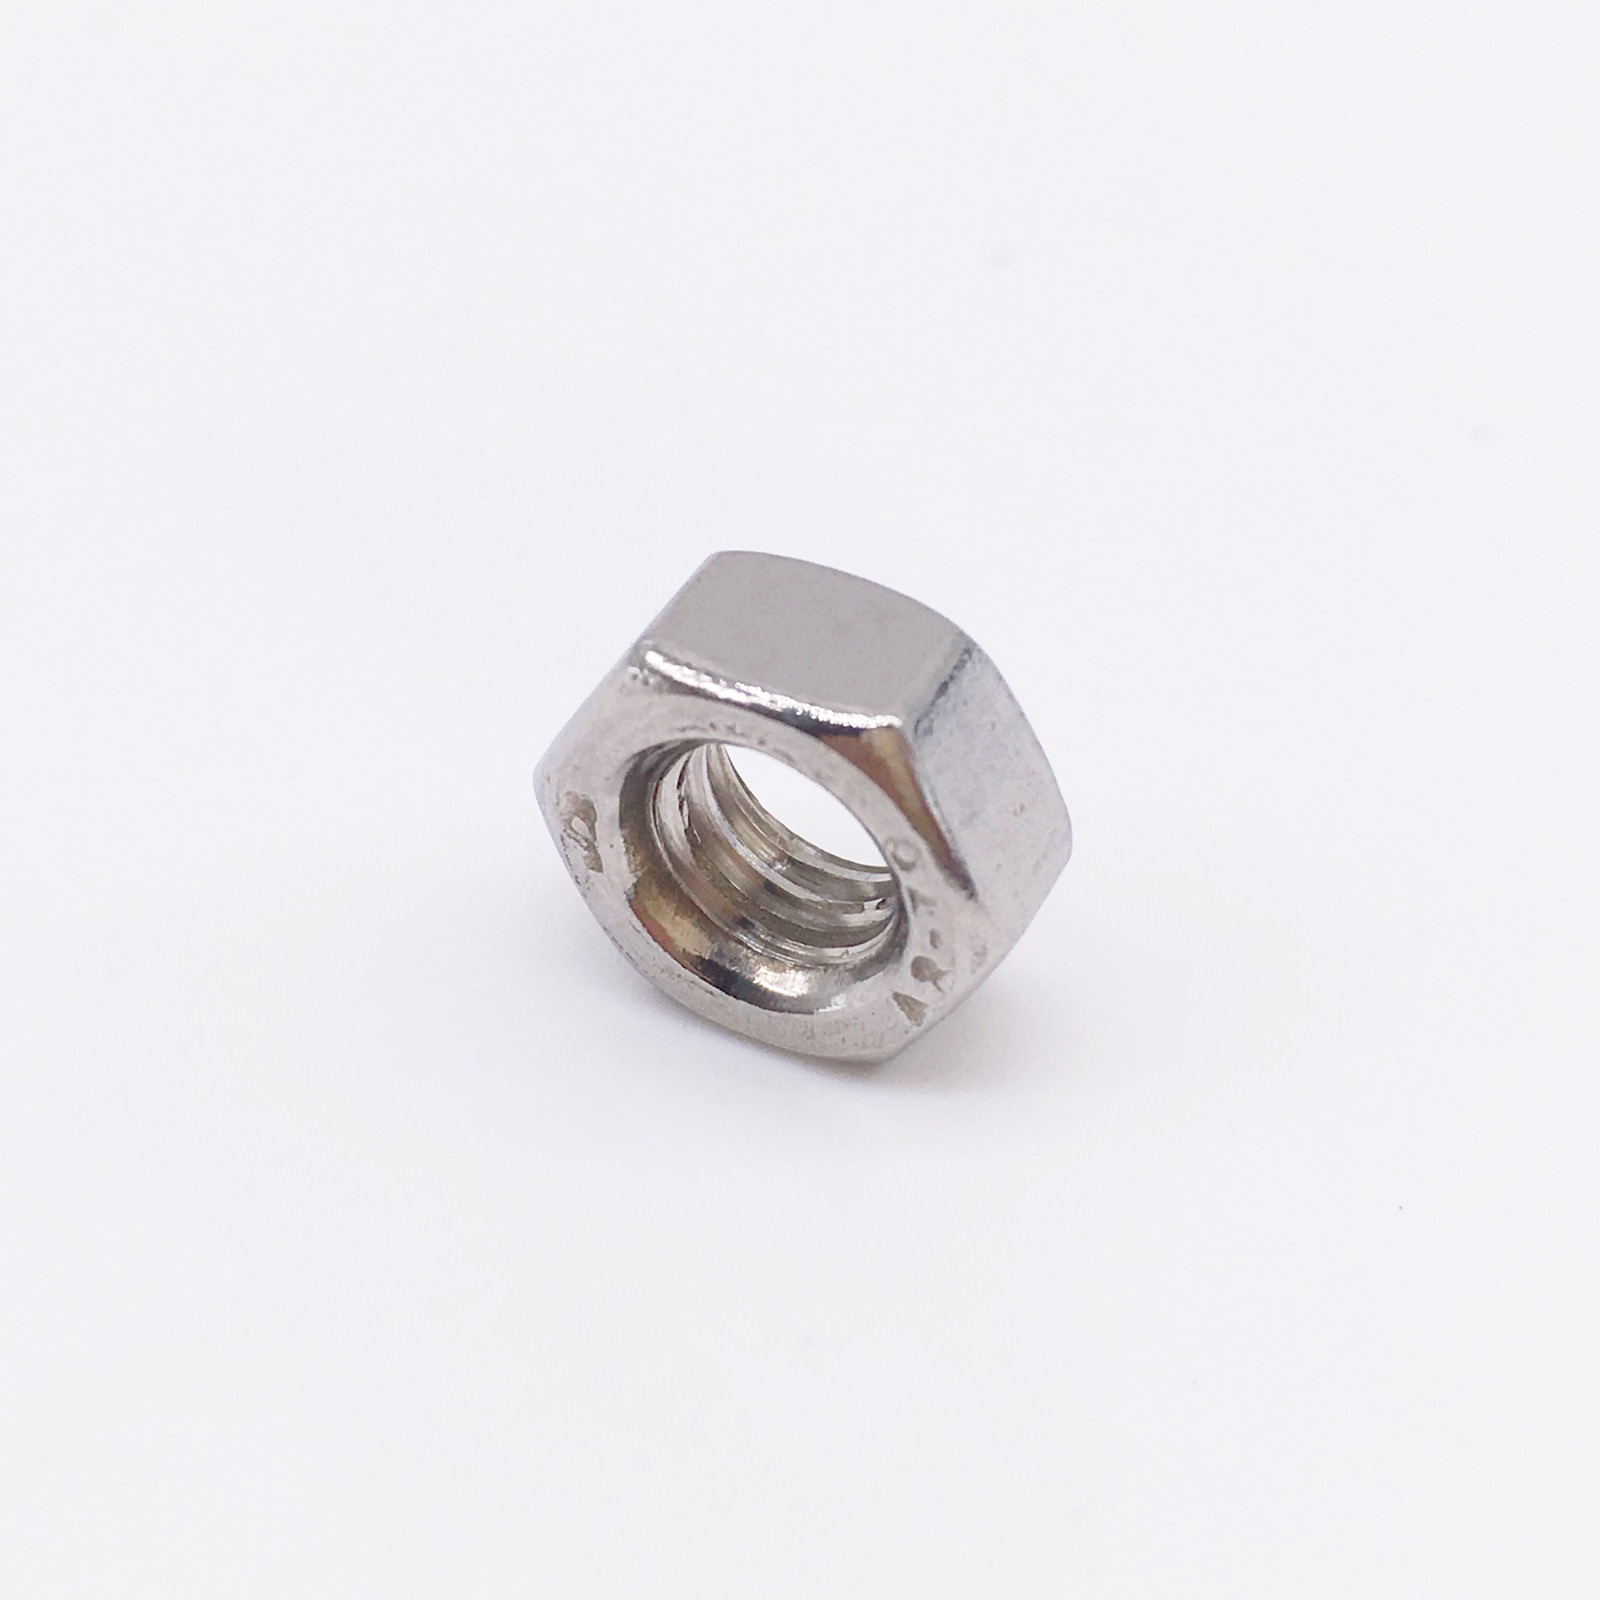 500pcs/lot  DIN934 material 304 stainless hexagonal nuts M4<br><br>Aliexpress